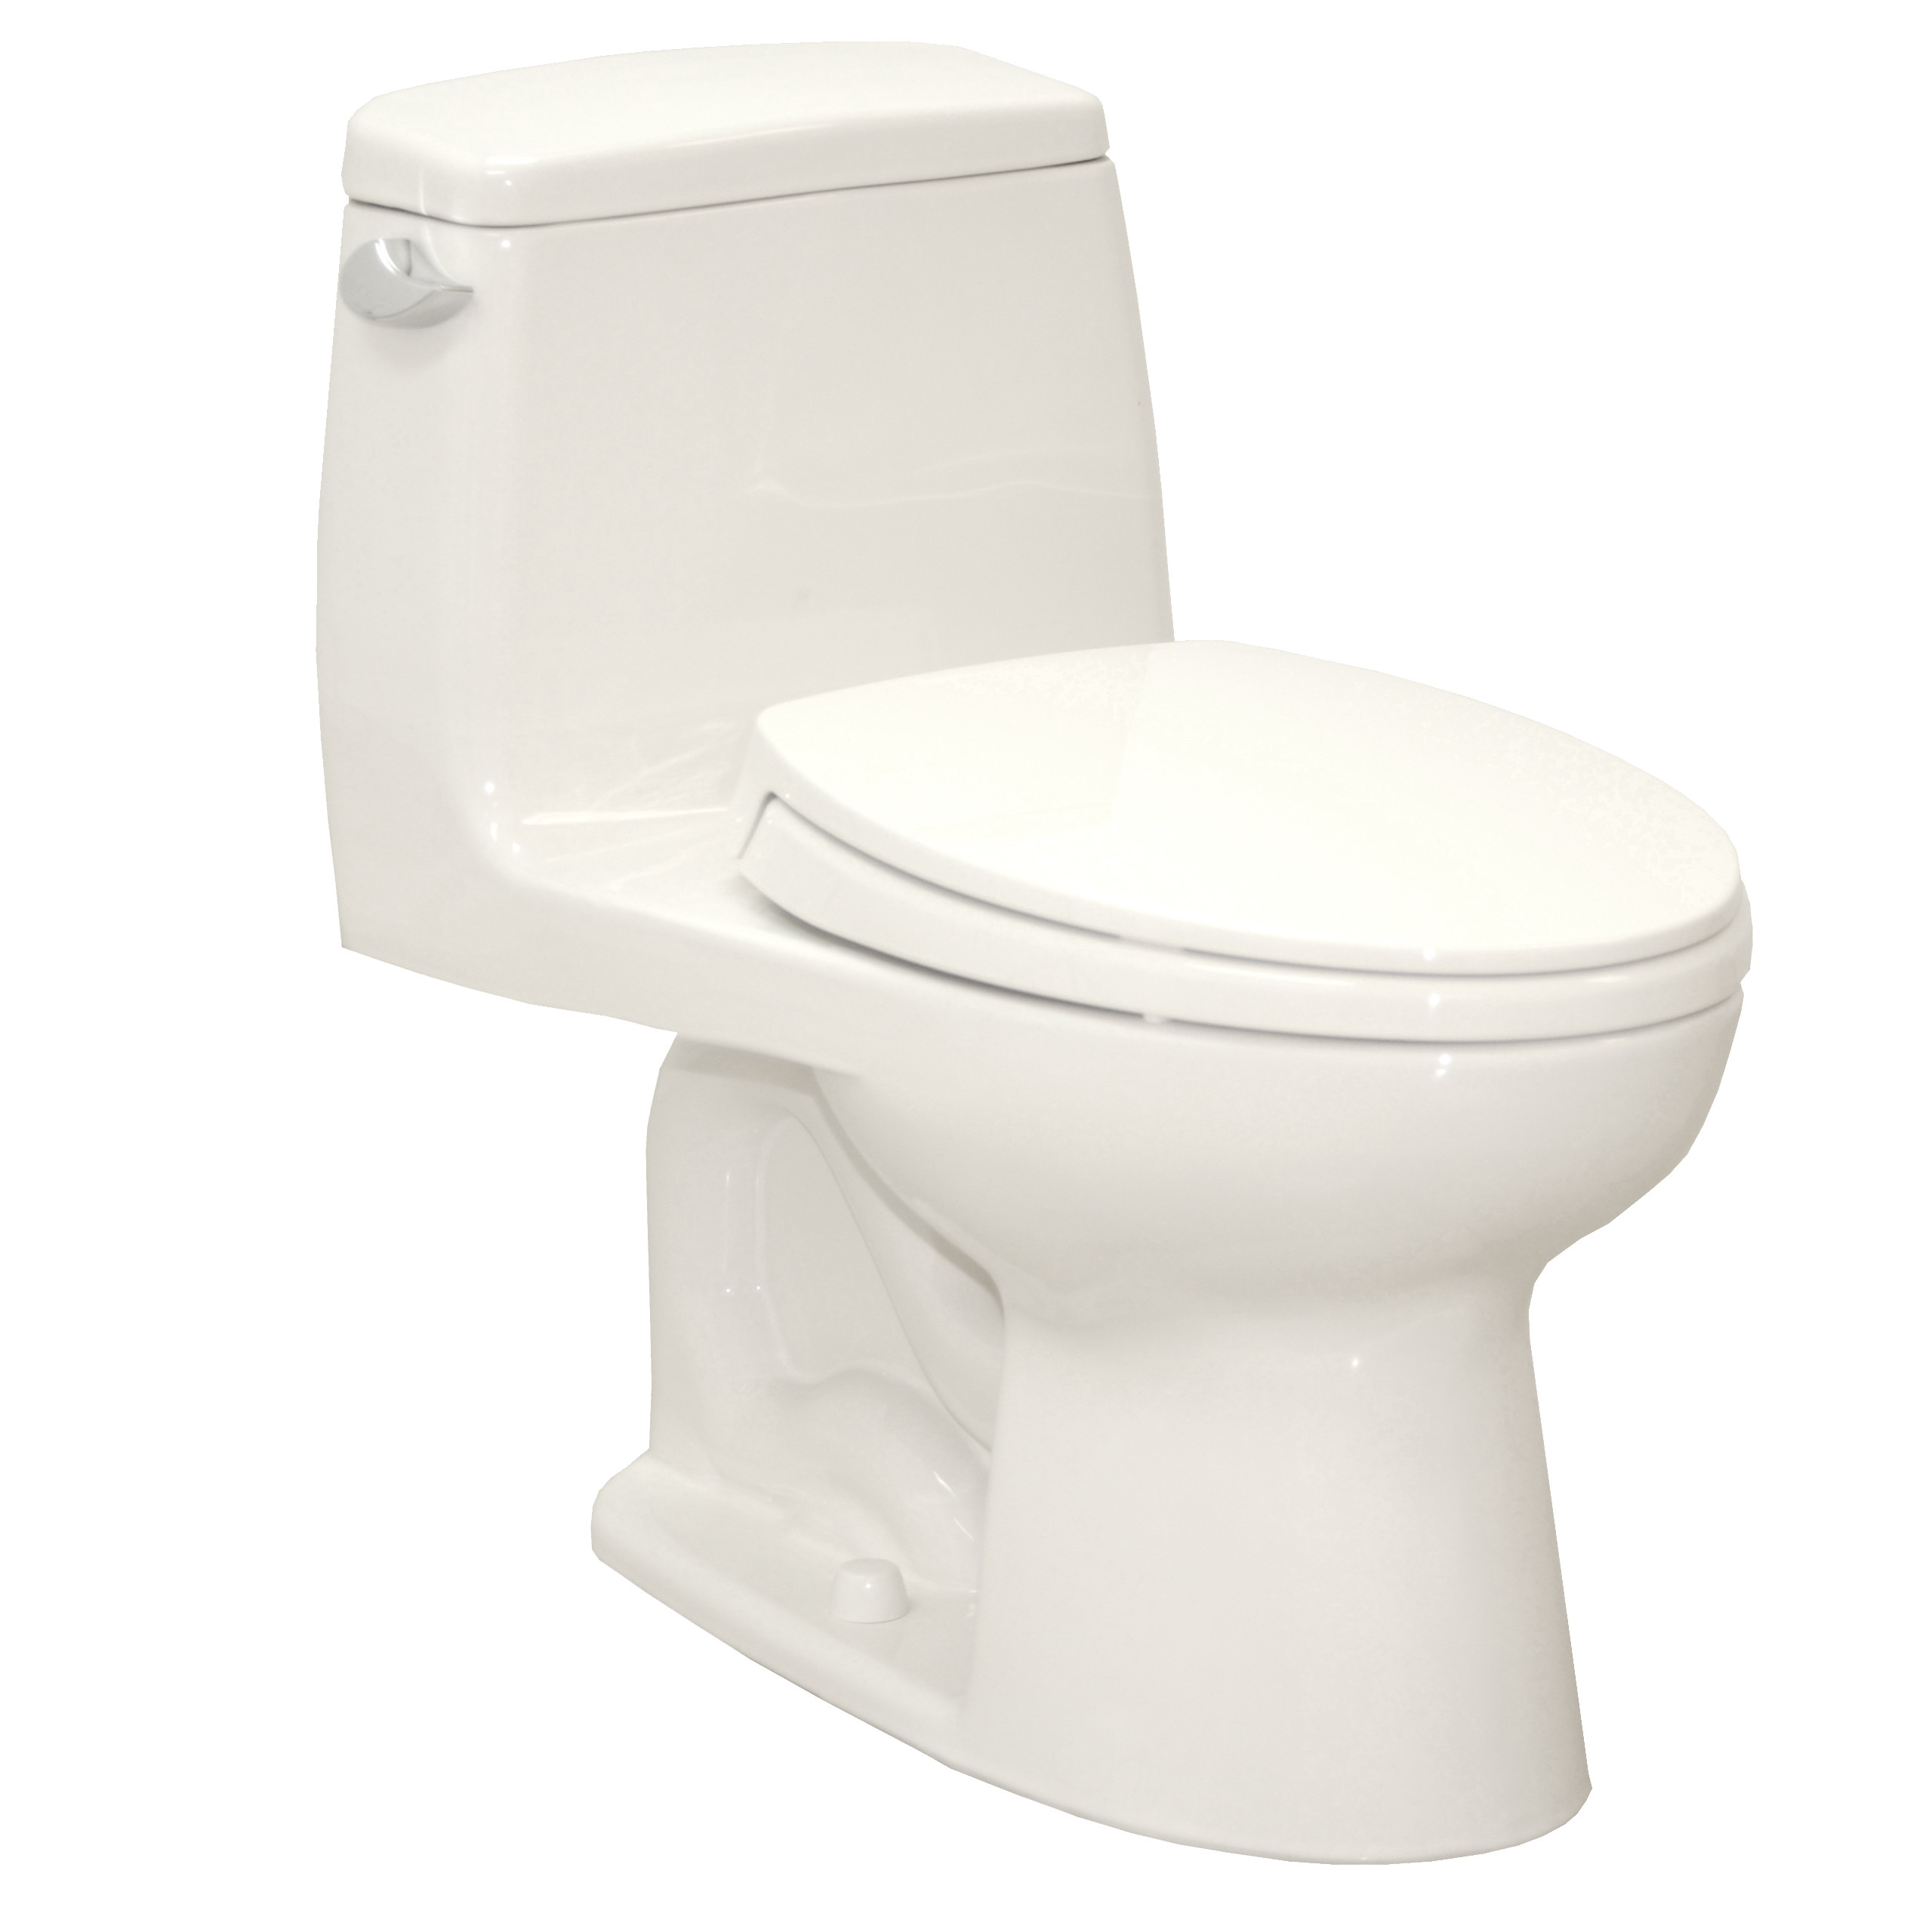 Have A Moder Toilet with Toto Toilet: Toto Clayton Toilet | Toto Toilet | Toilets Brands